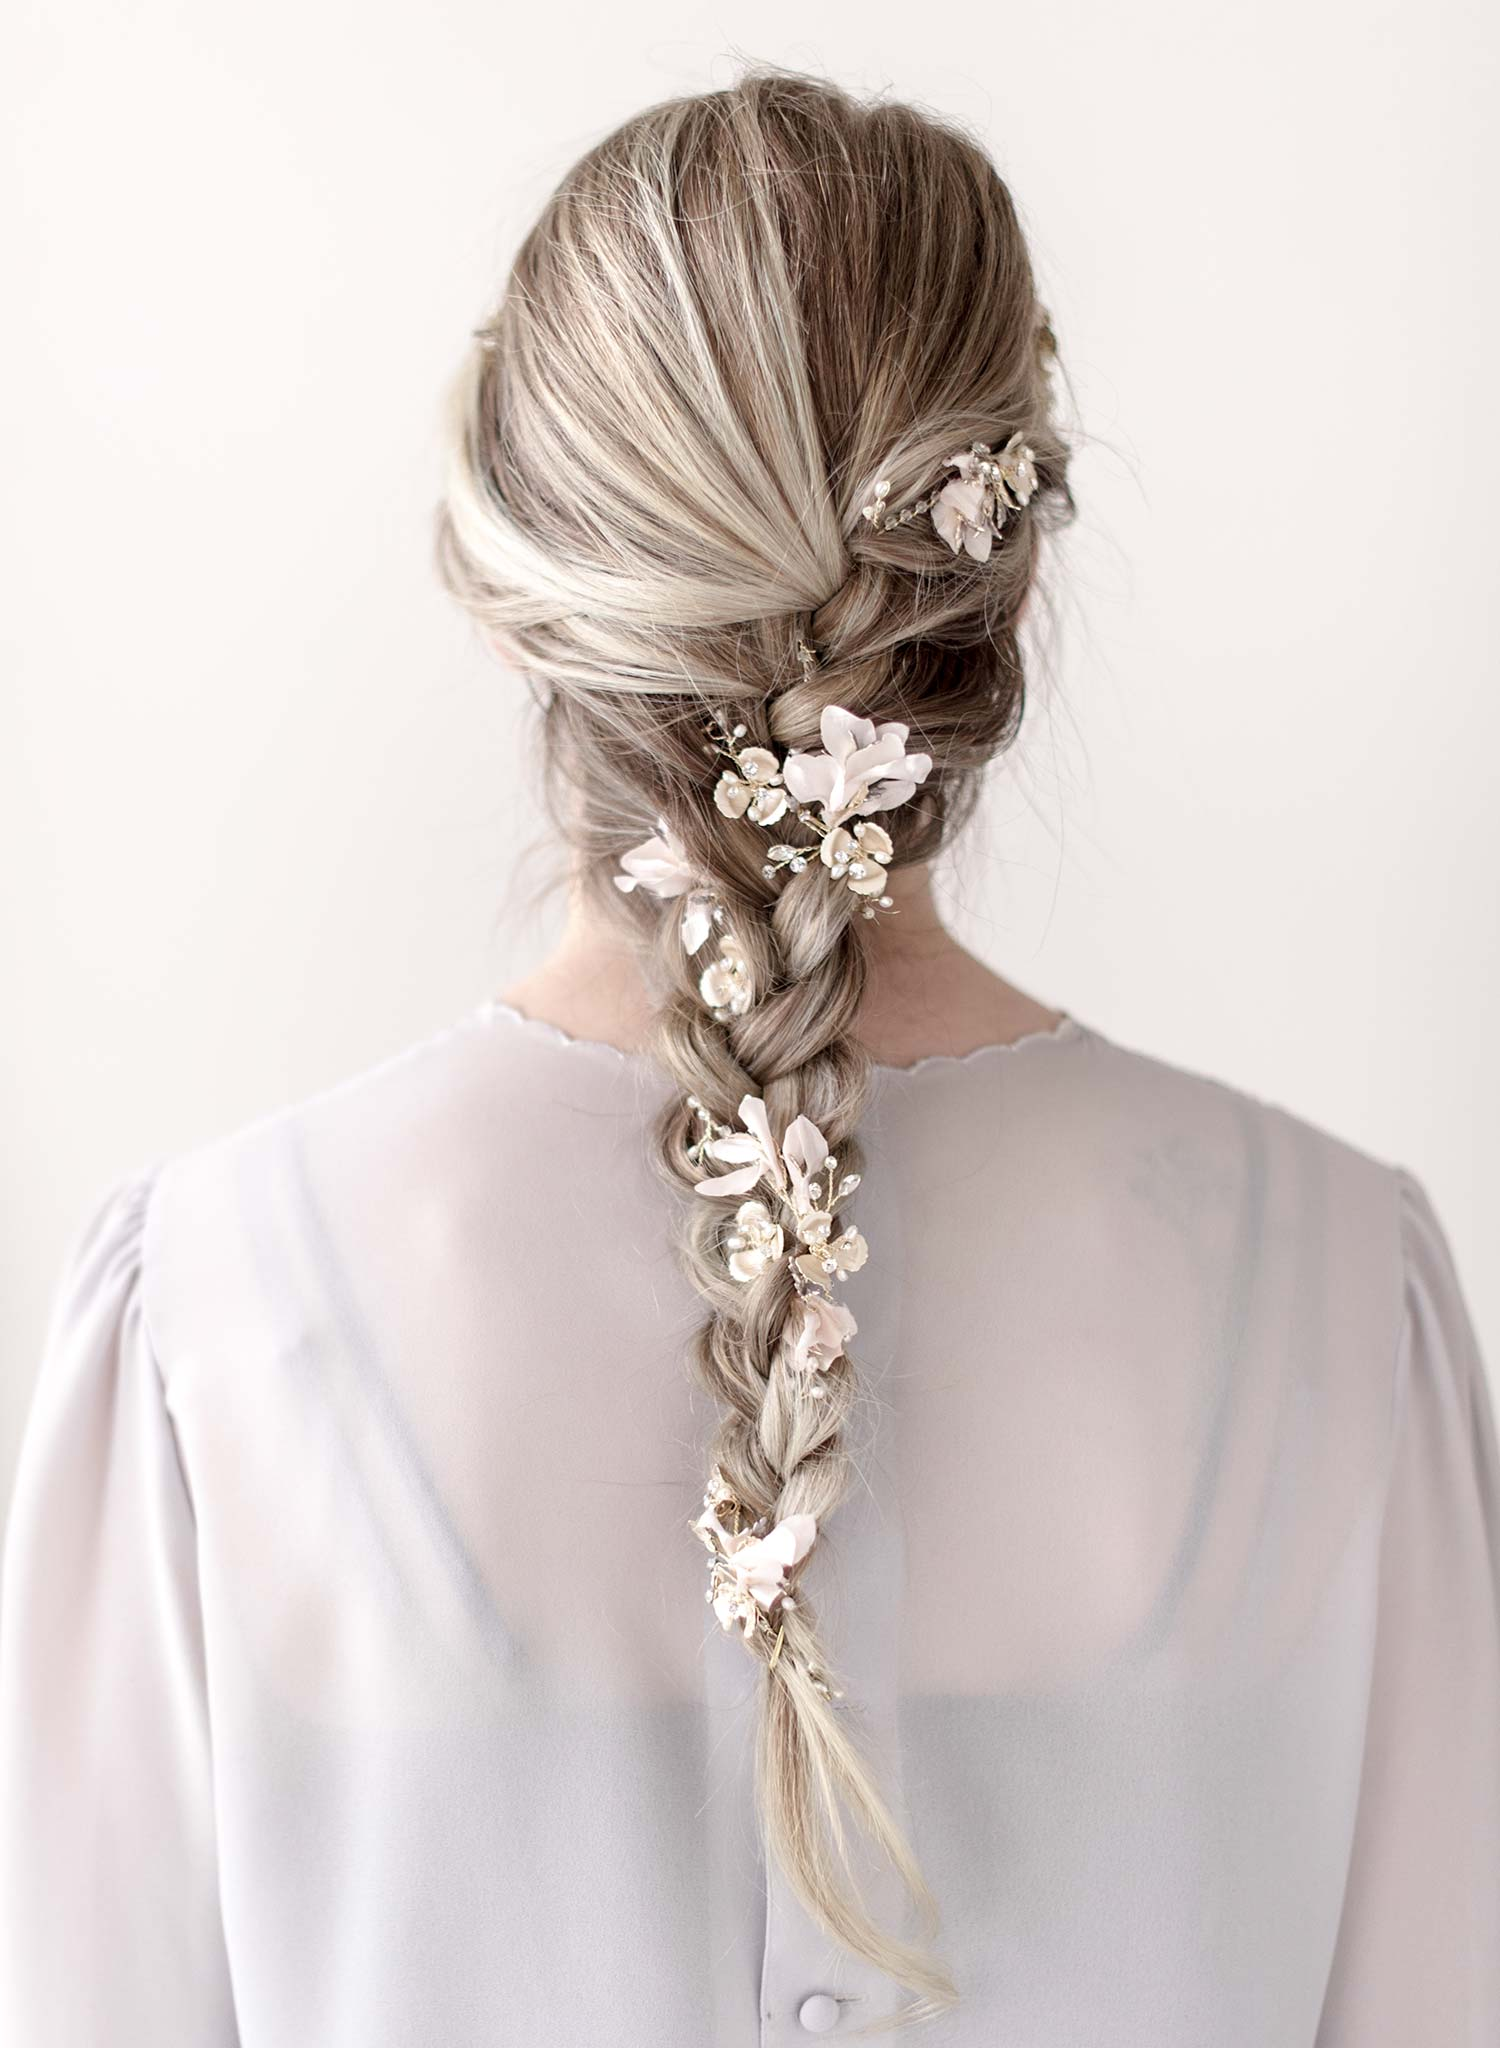 Extra long blushing blossom and crystal hair vine - Style #912